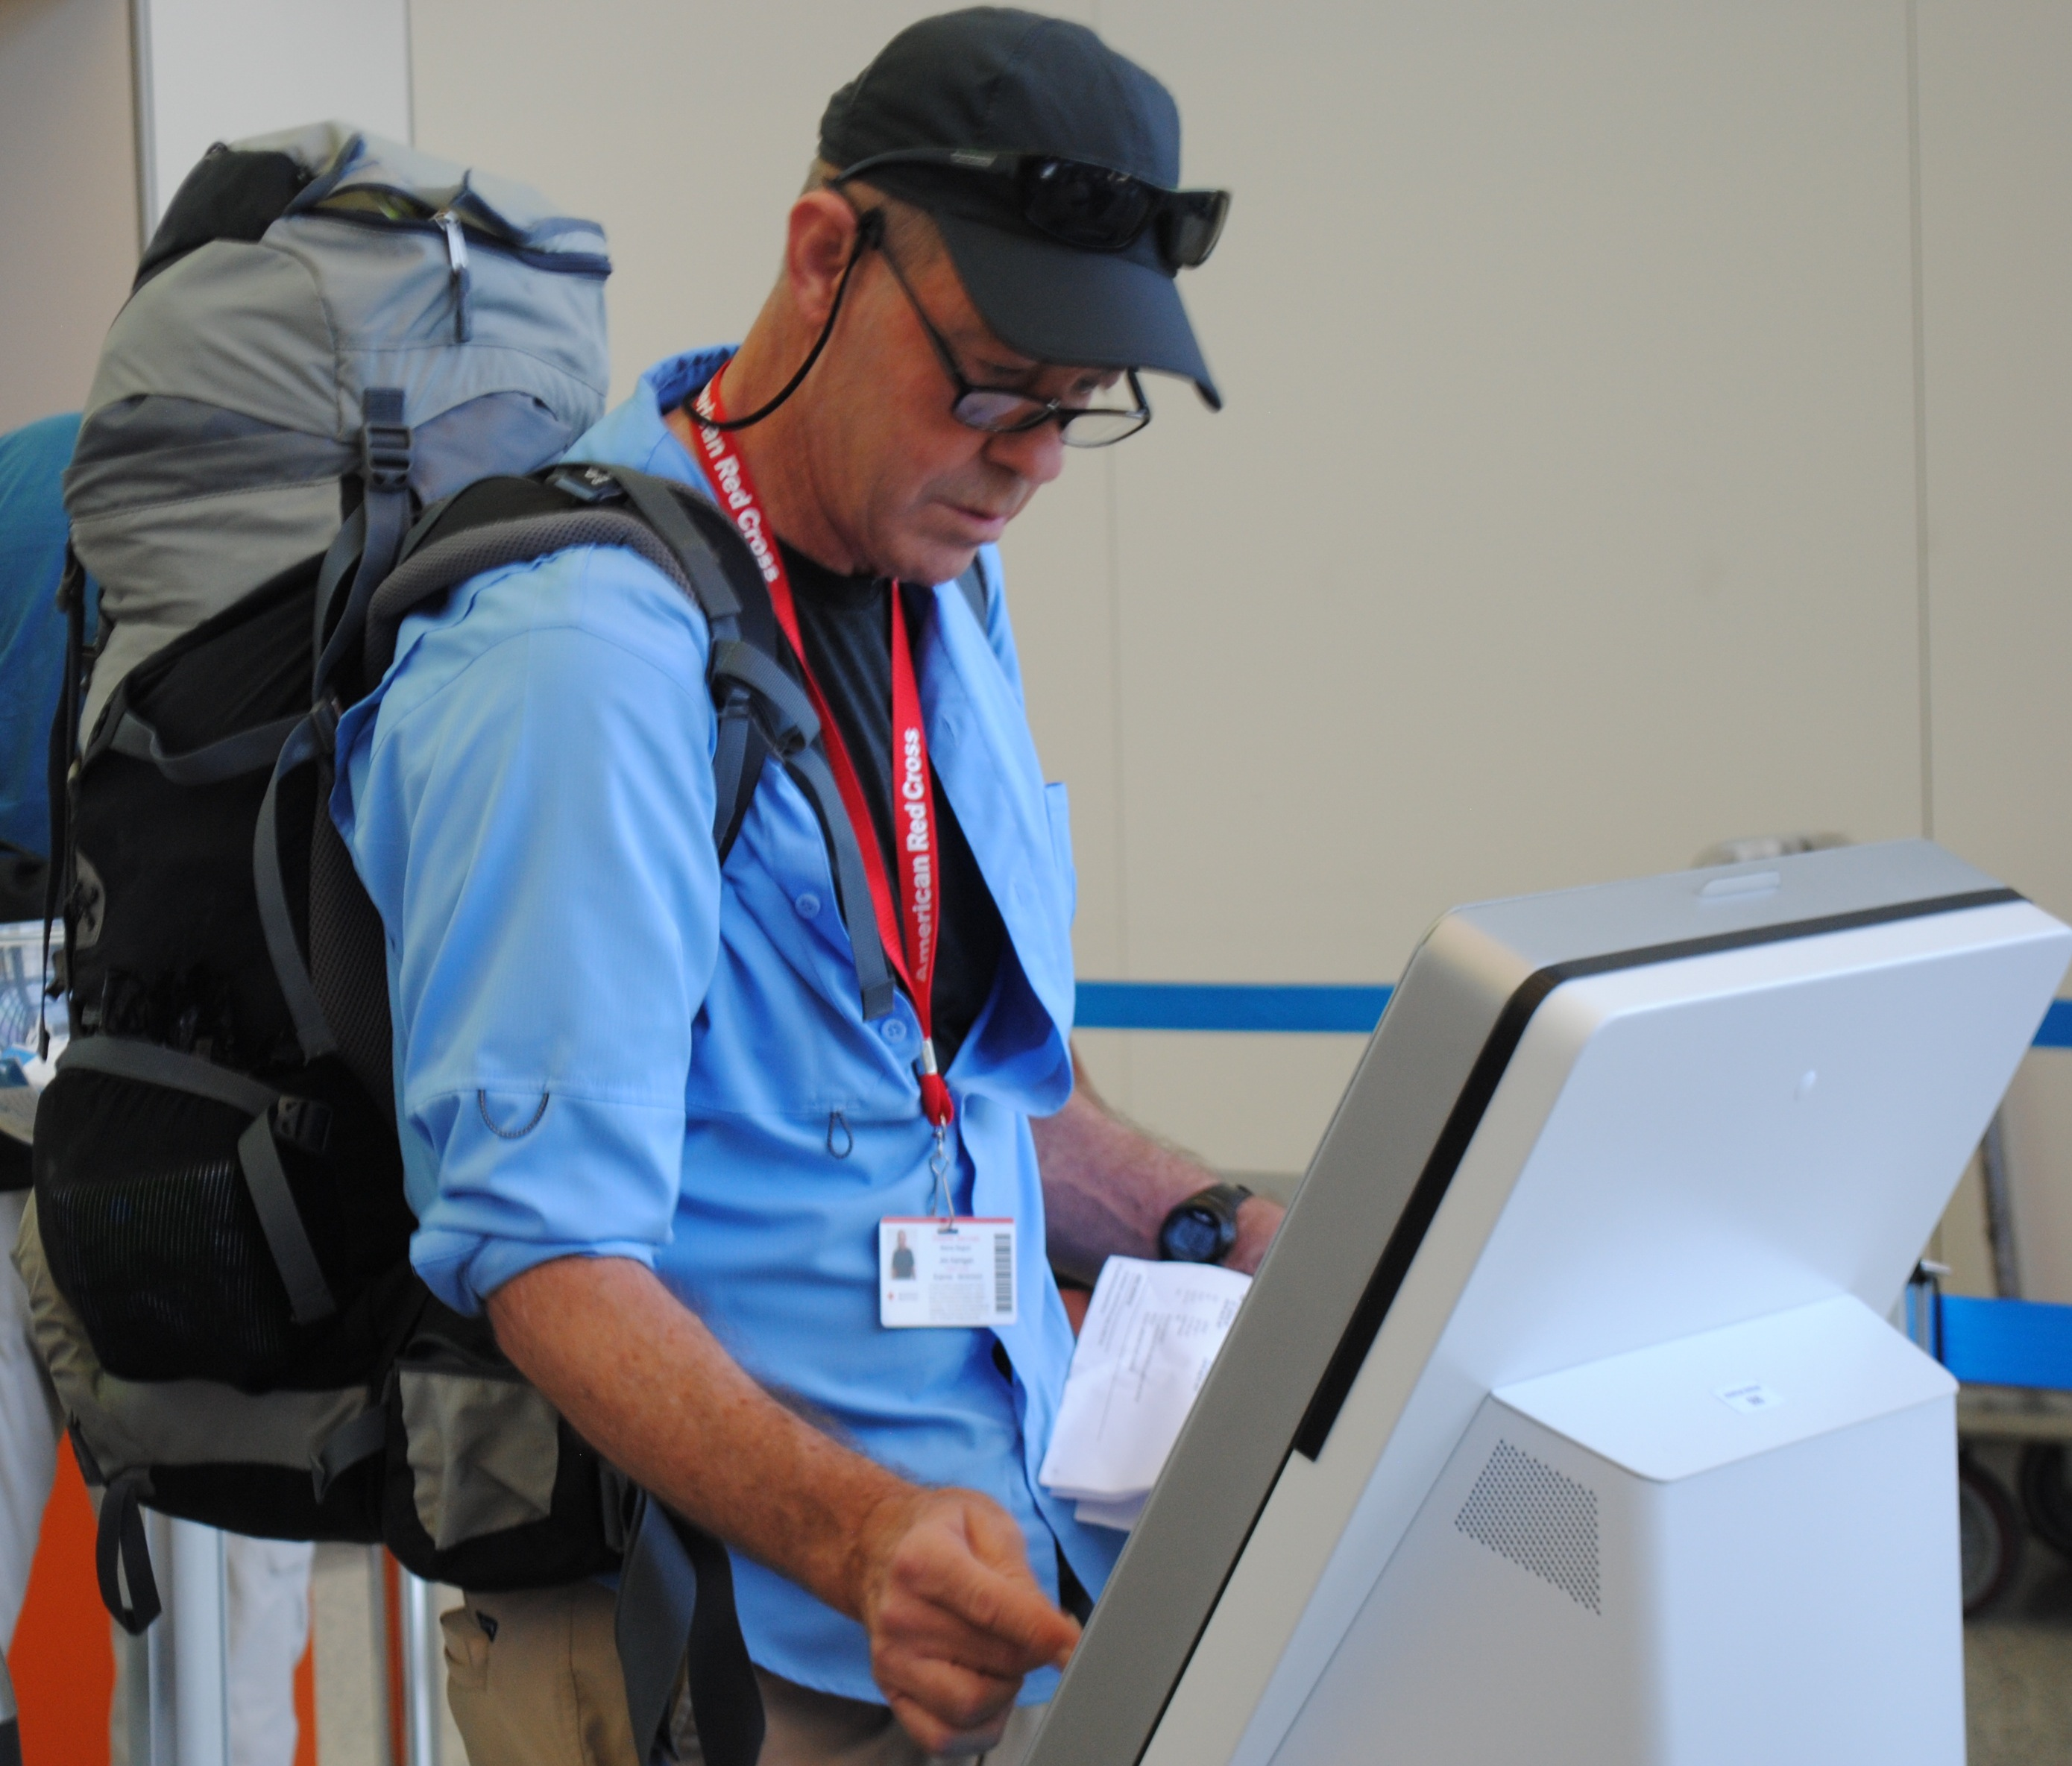 Jim Kerrigan of Old Orchard Beach checks in at the Portland Jetport on Monday morning before deploying to Puerto Rico with the Red Cross.LIZ GOTTHELF/Journal Tribune